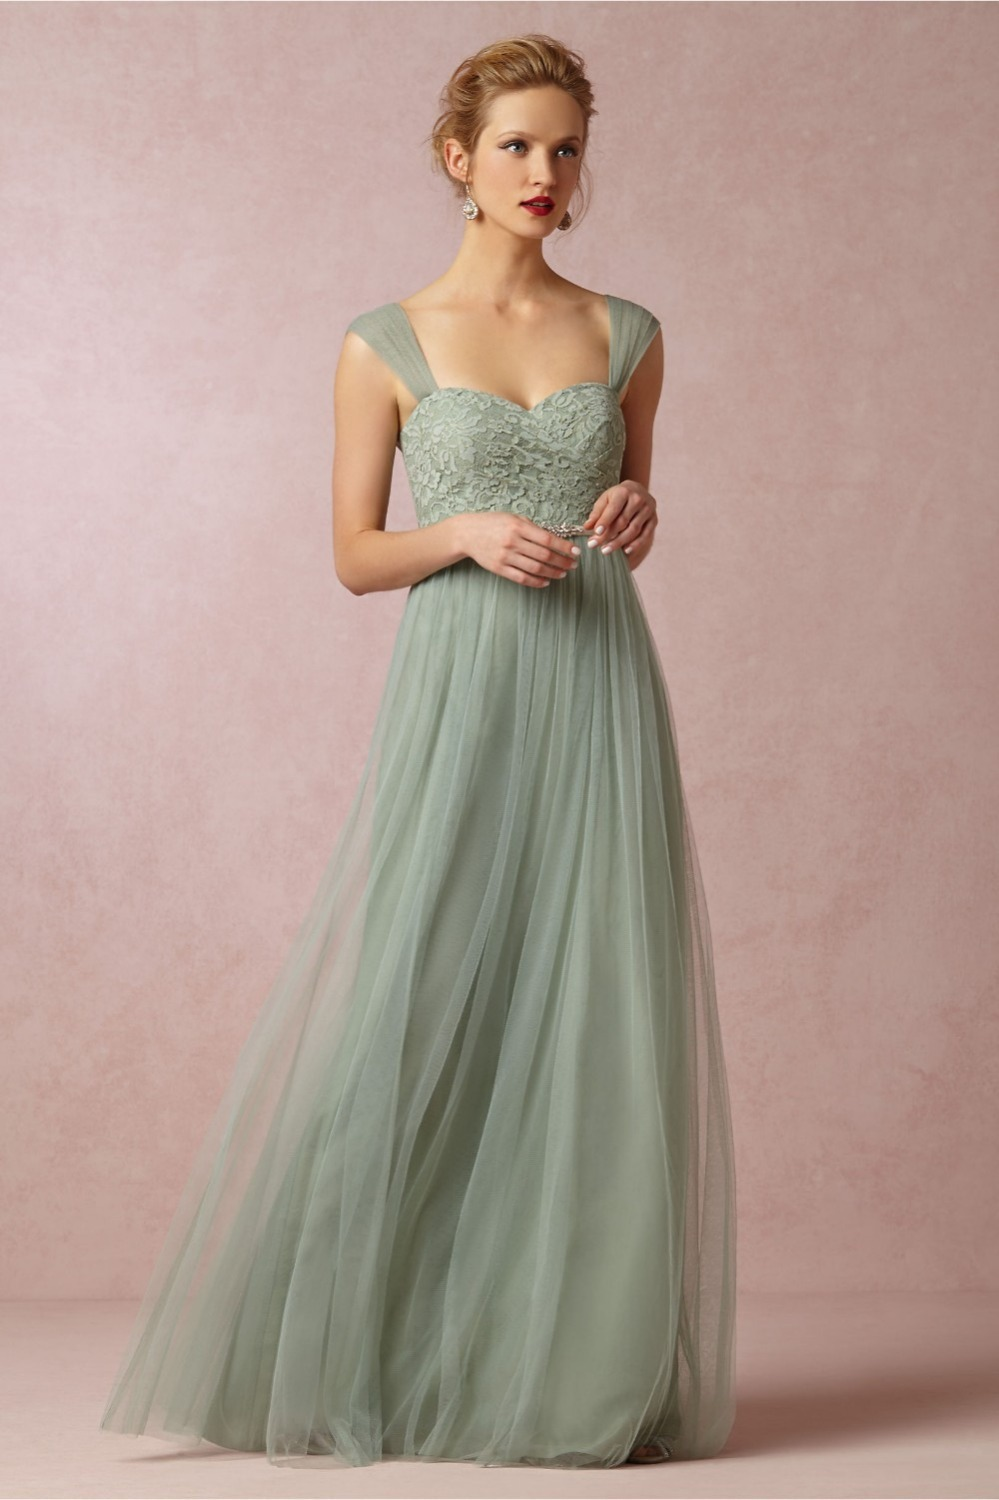 Elegant Long Bridesmaid Dresses For Wedding Mint Green Bridesmaid ...